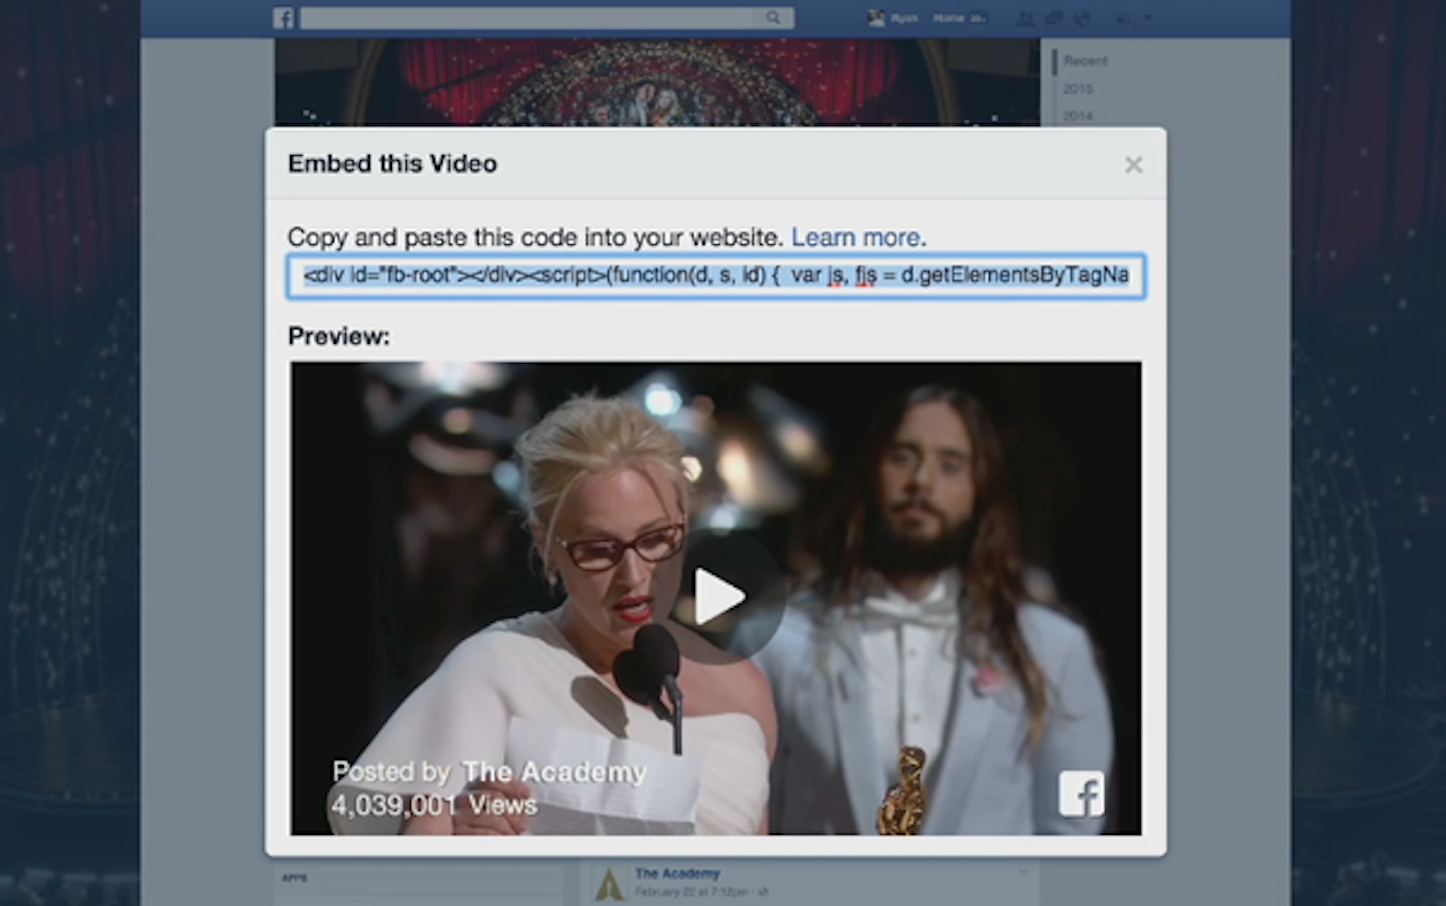 fb-embed-video.png